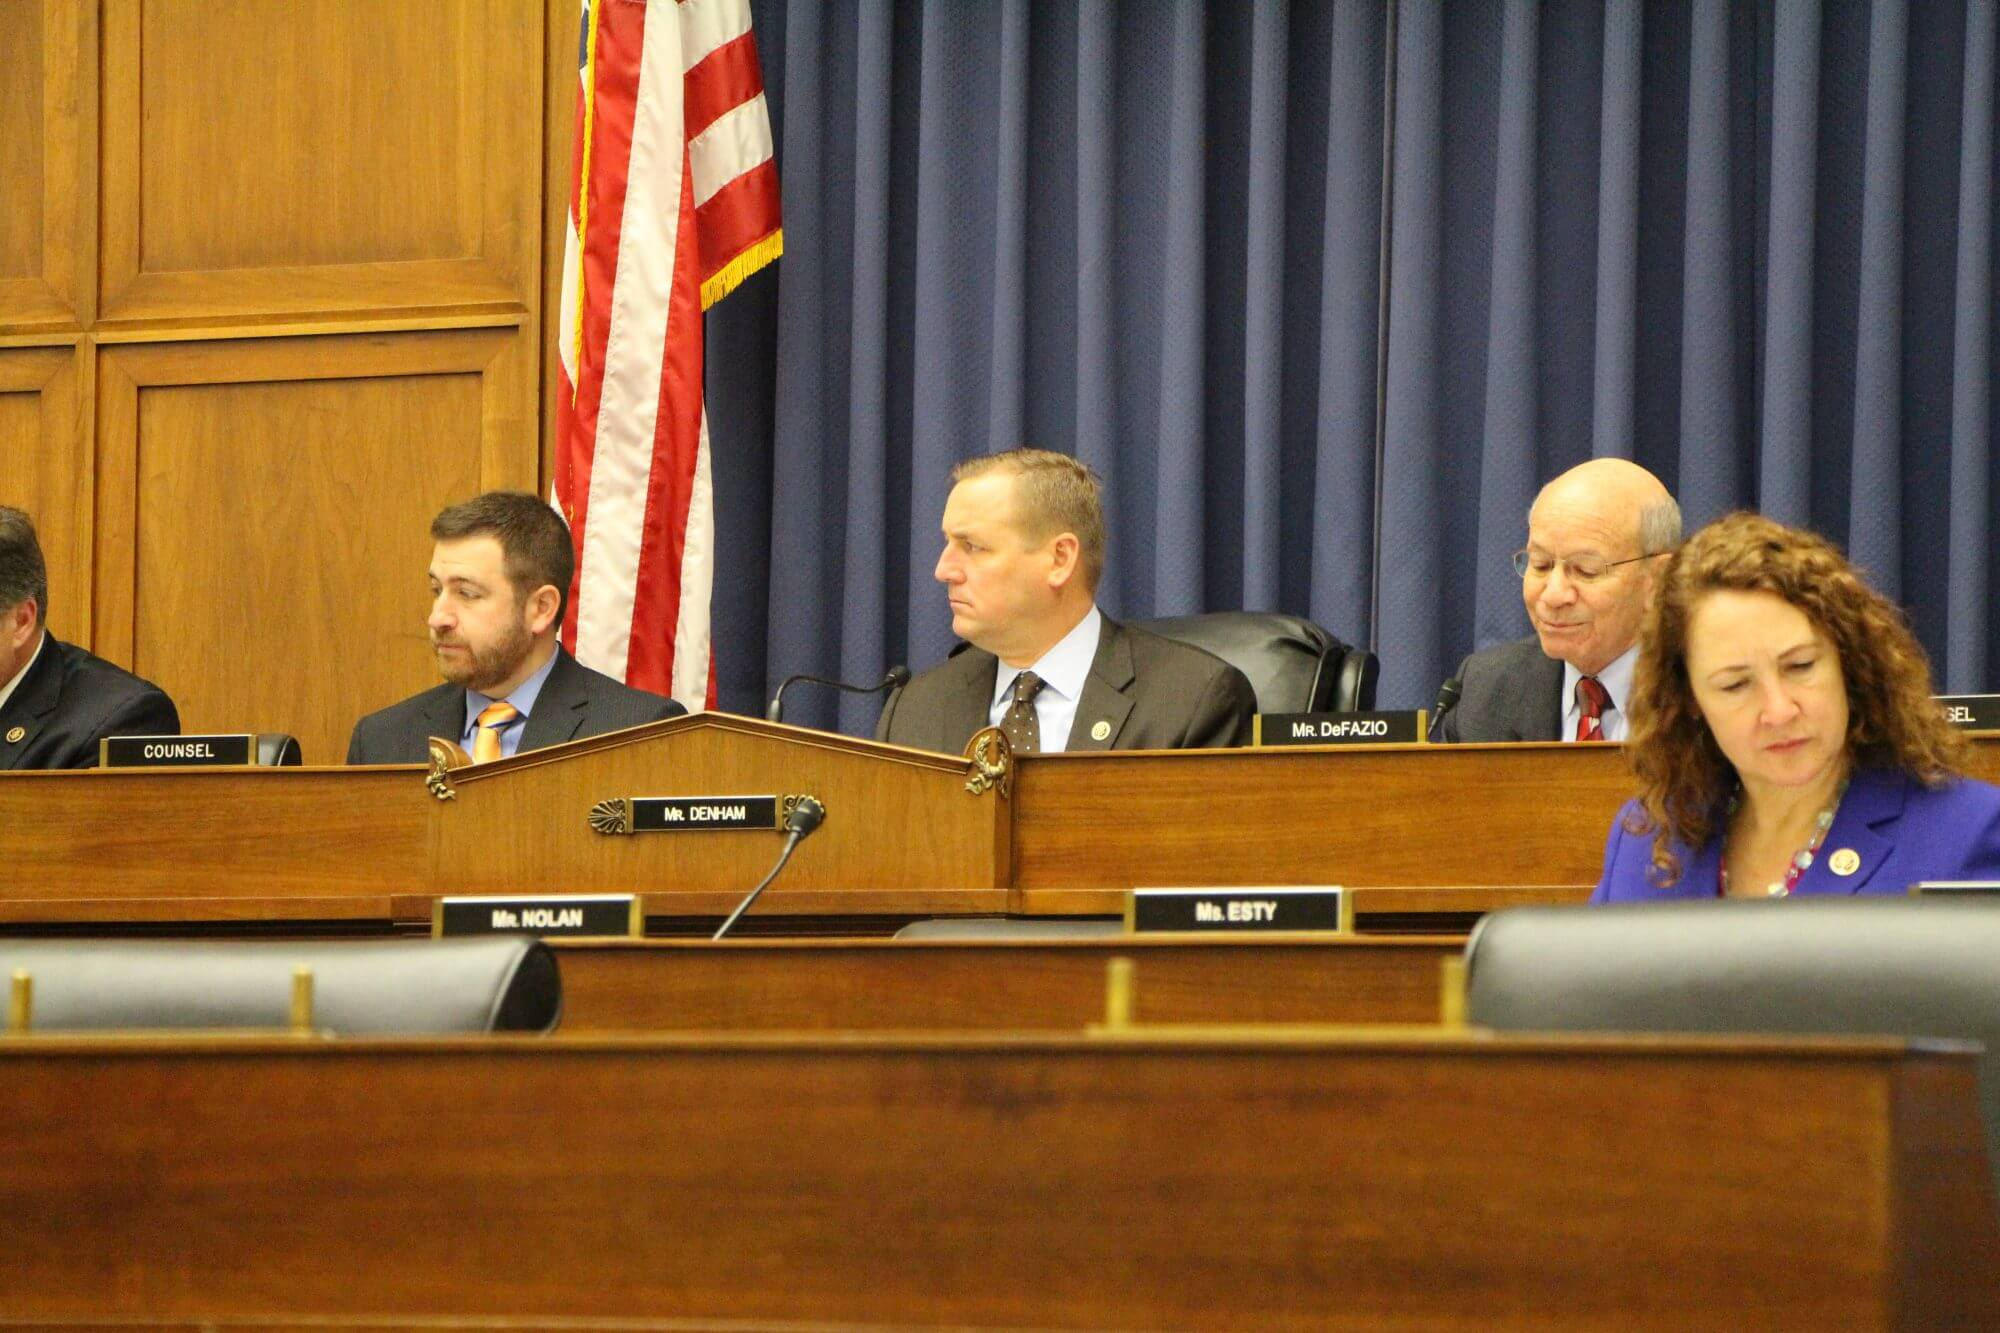 Changing energy prices, oil and gas transportation infrastructure in focus at meeting